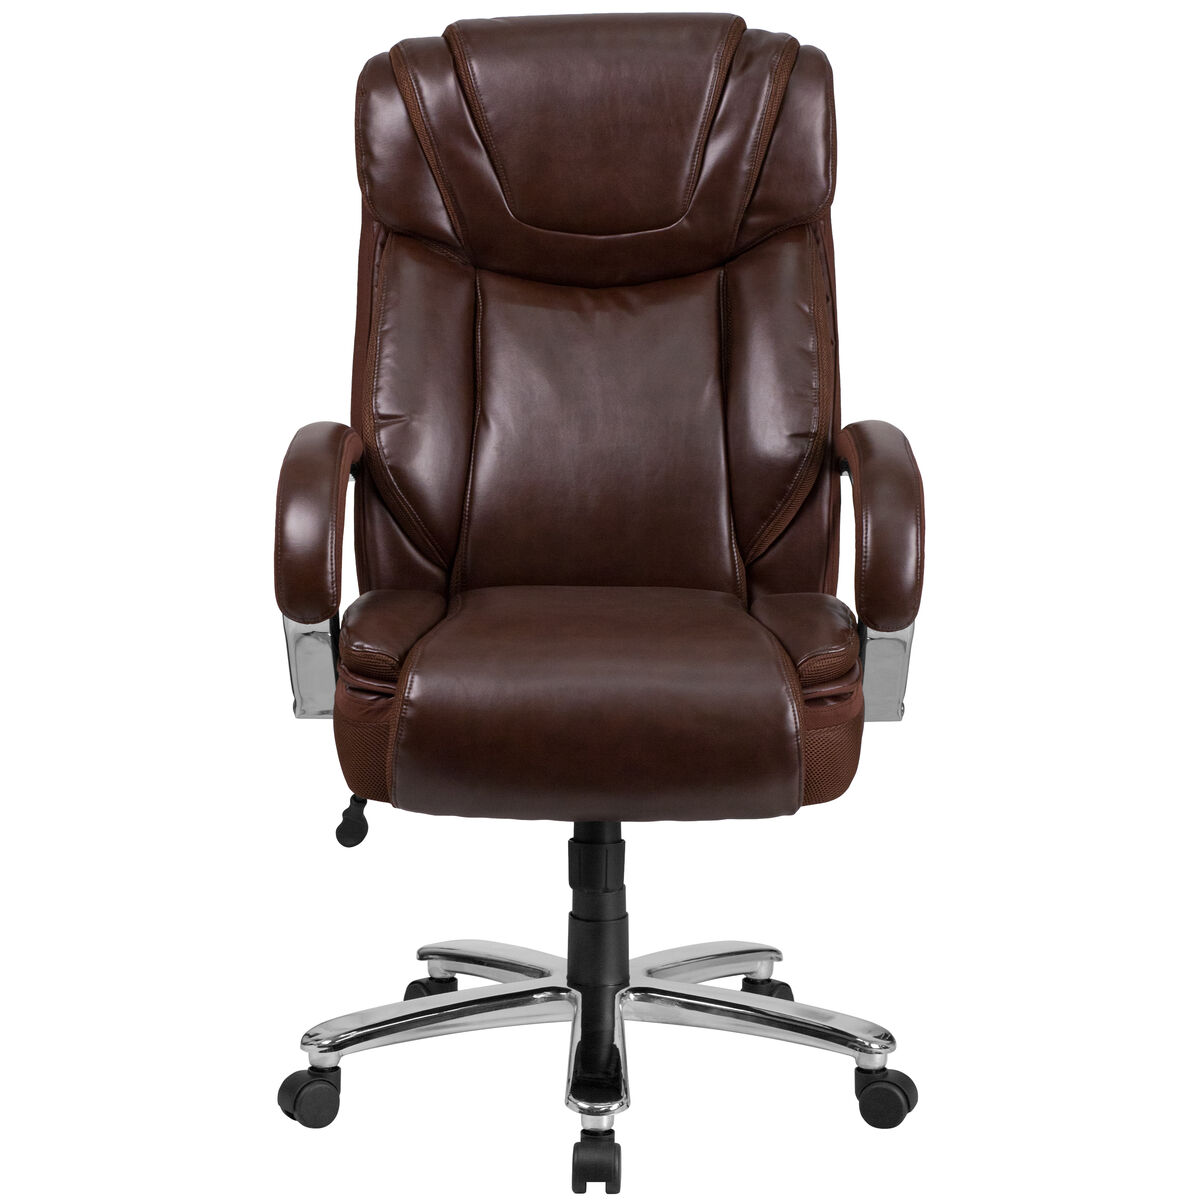 large brown leather chair brown 500lb high back chair go 2092m 1 bn gg bizchair com 16352 | FLASH FURNITURE GO 2092M 1 BN GG INSET3